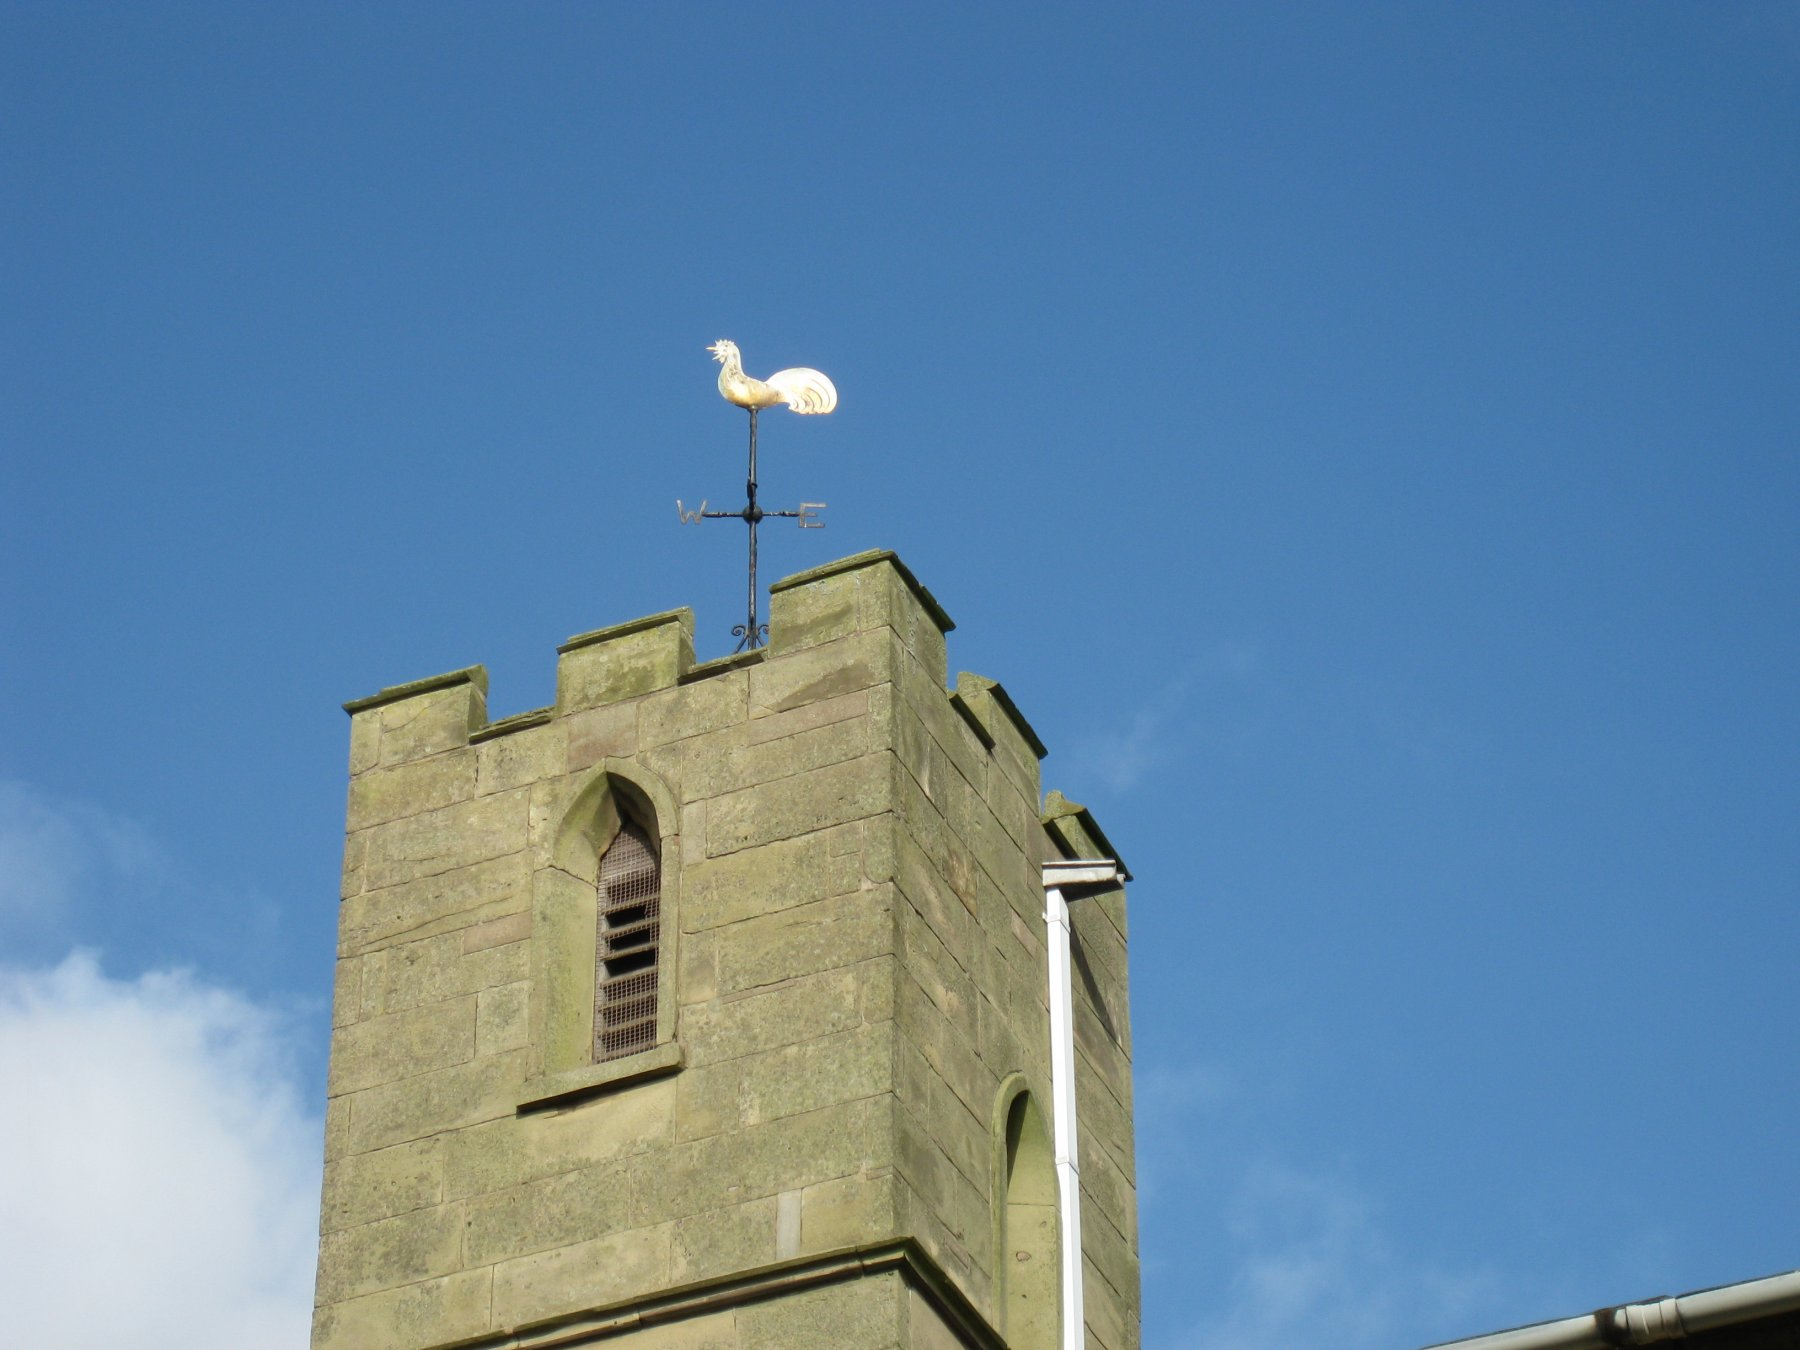 a church tower with a cockerel weather vane on top